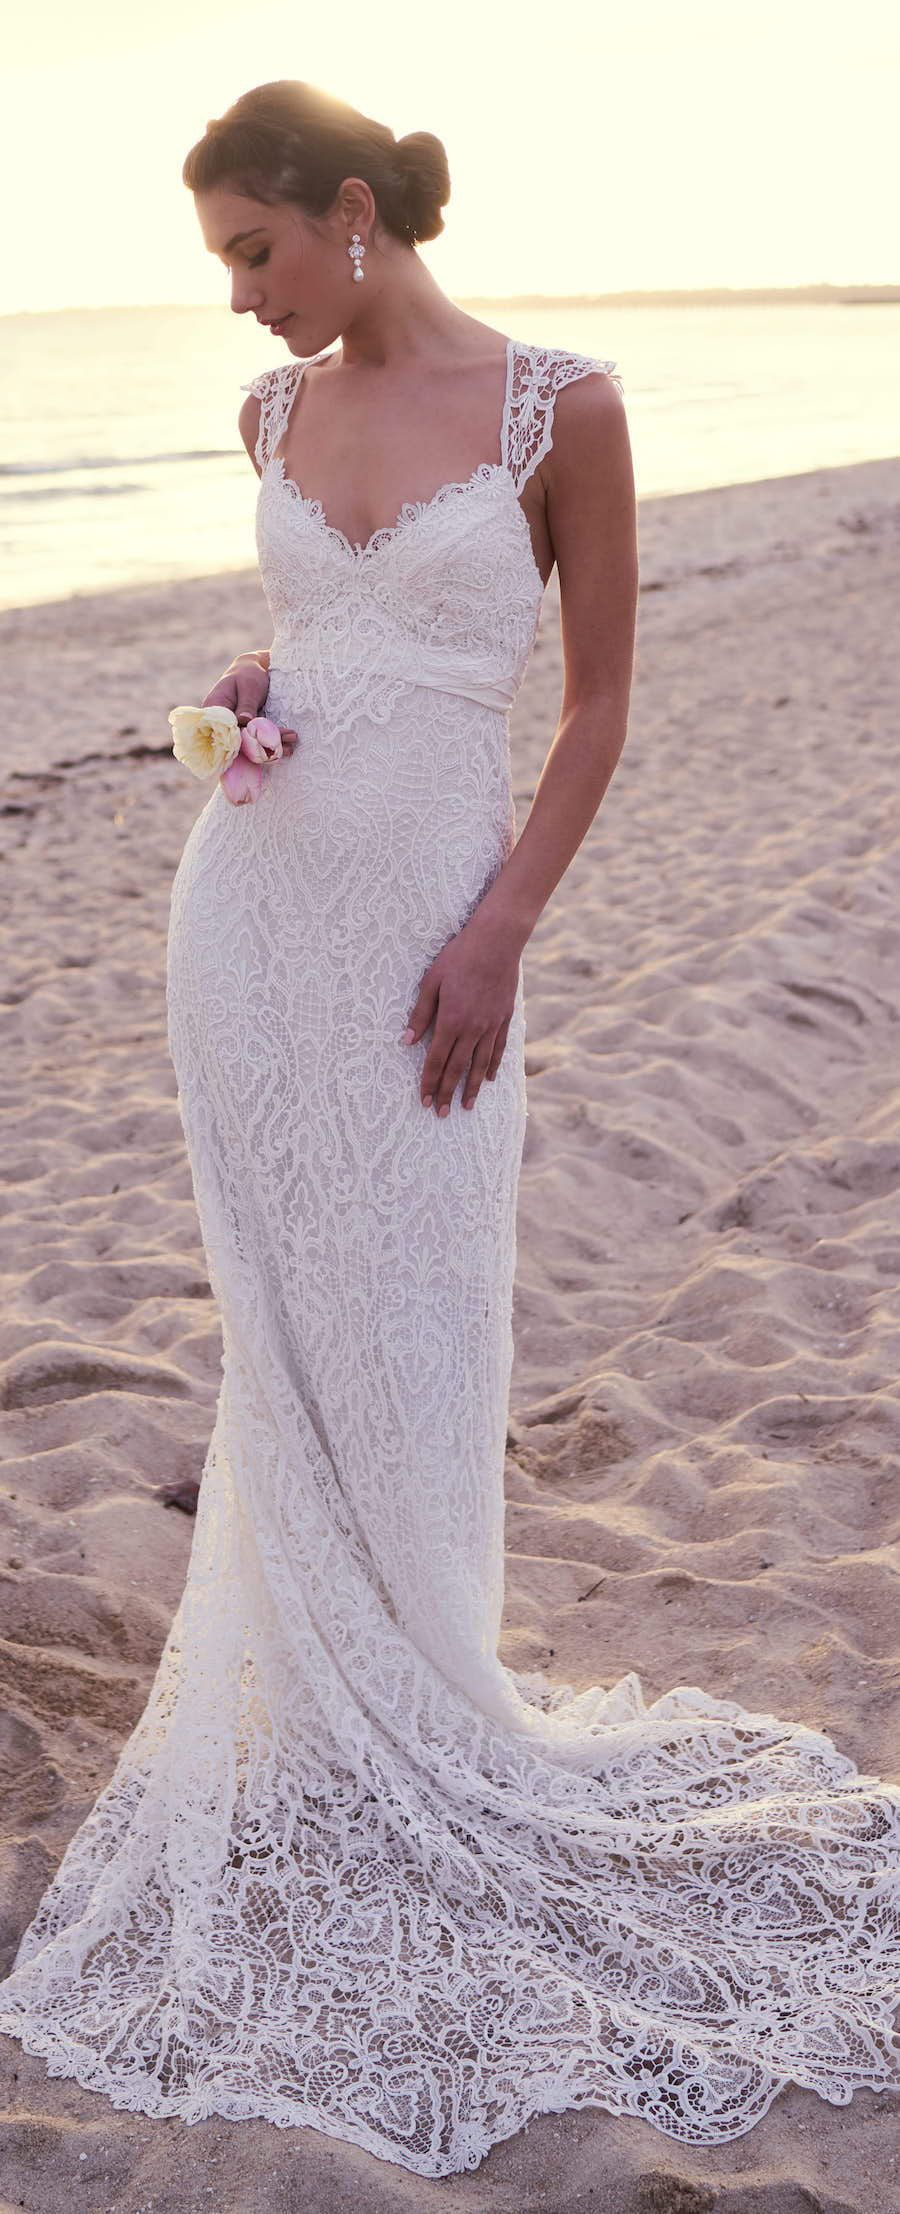 Wedding dress by anna campbell featuring a flattering tbar